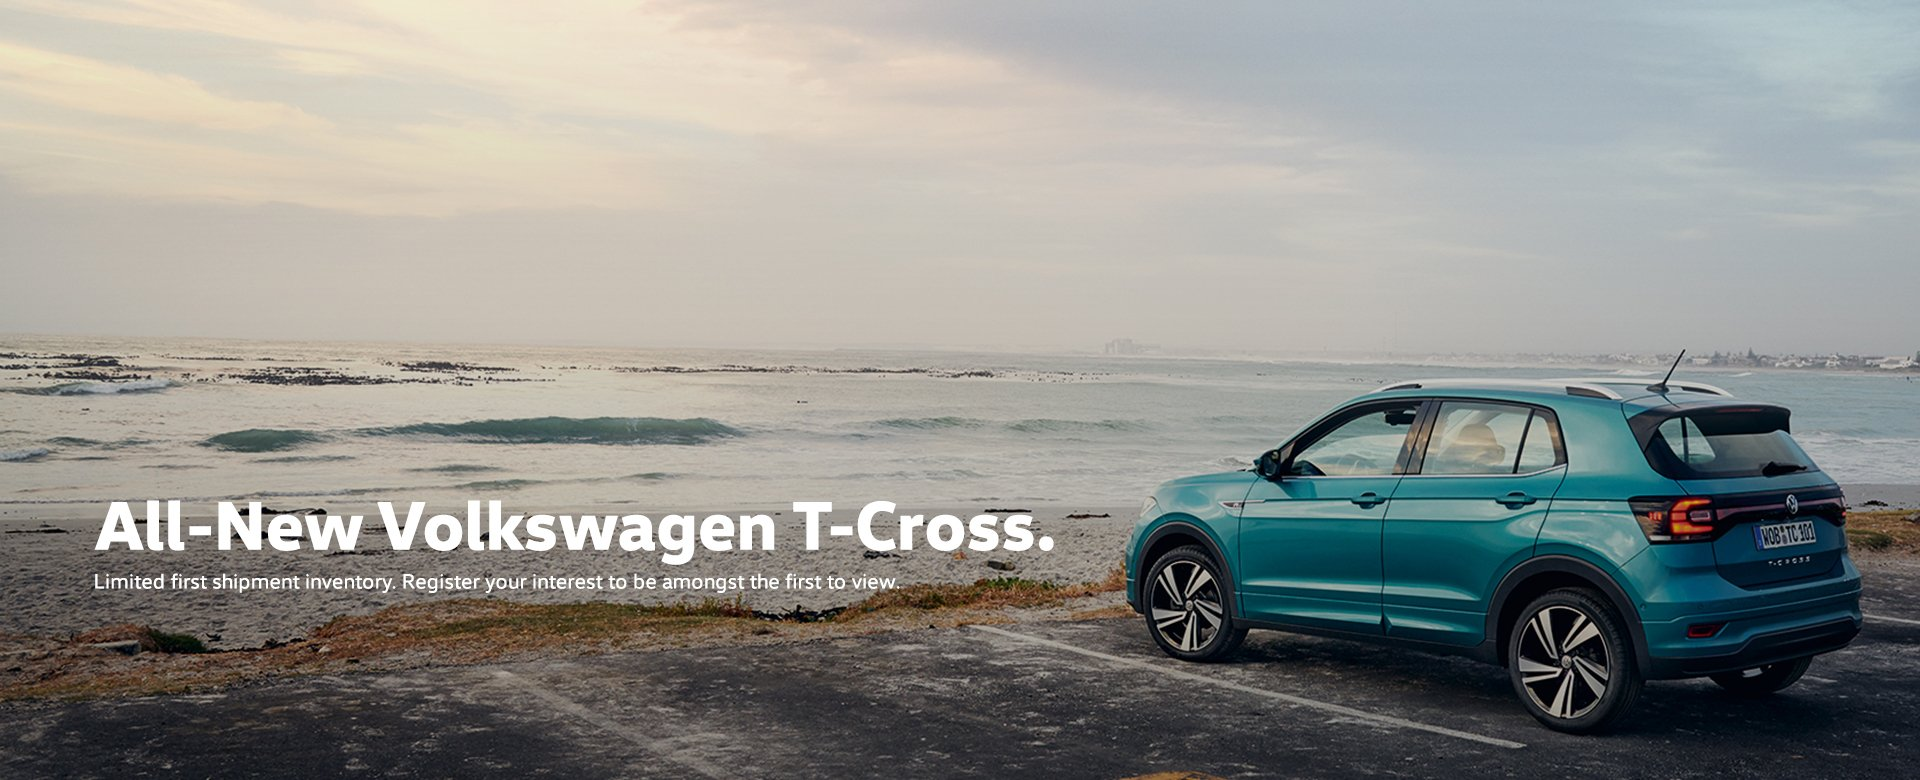 Volkswagen T-Cross. Limited Units Available.